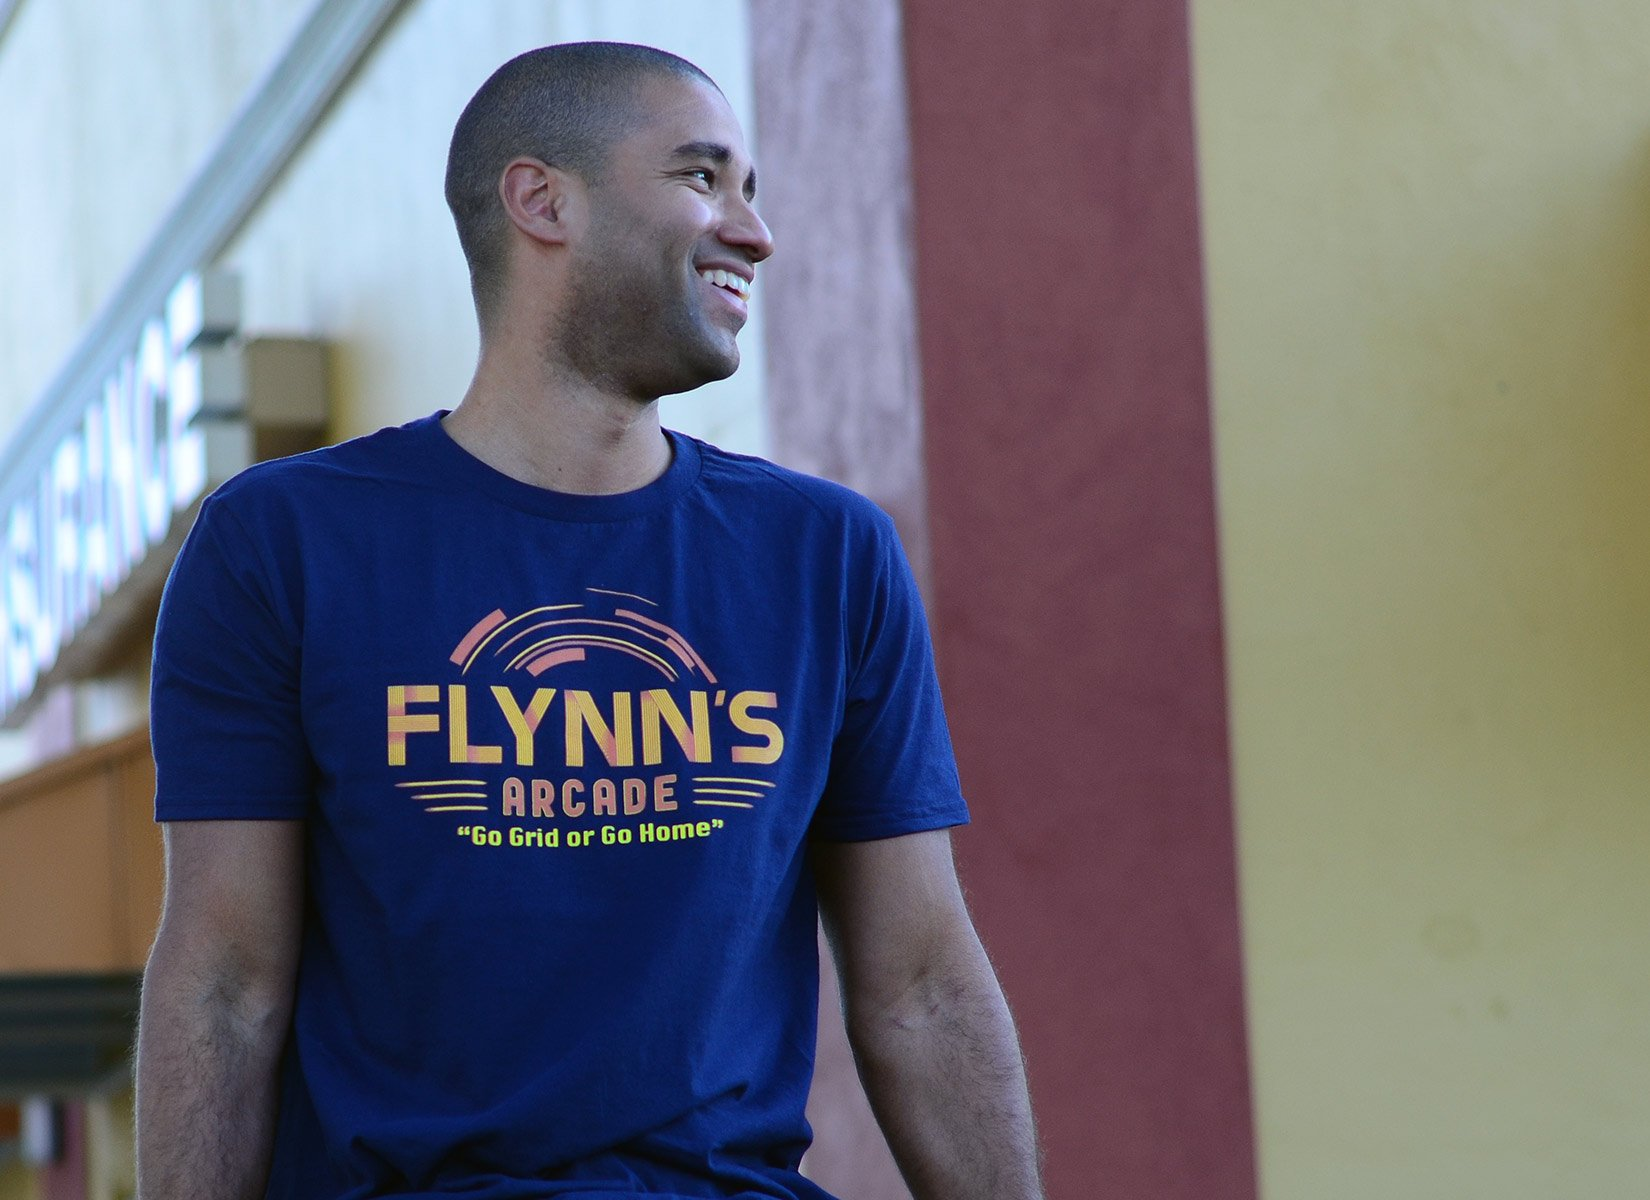 Flynn's Arcade on Mens T-Shirt